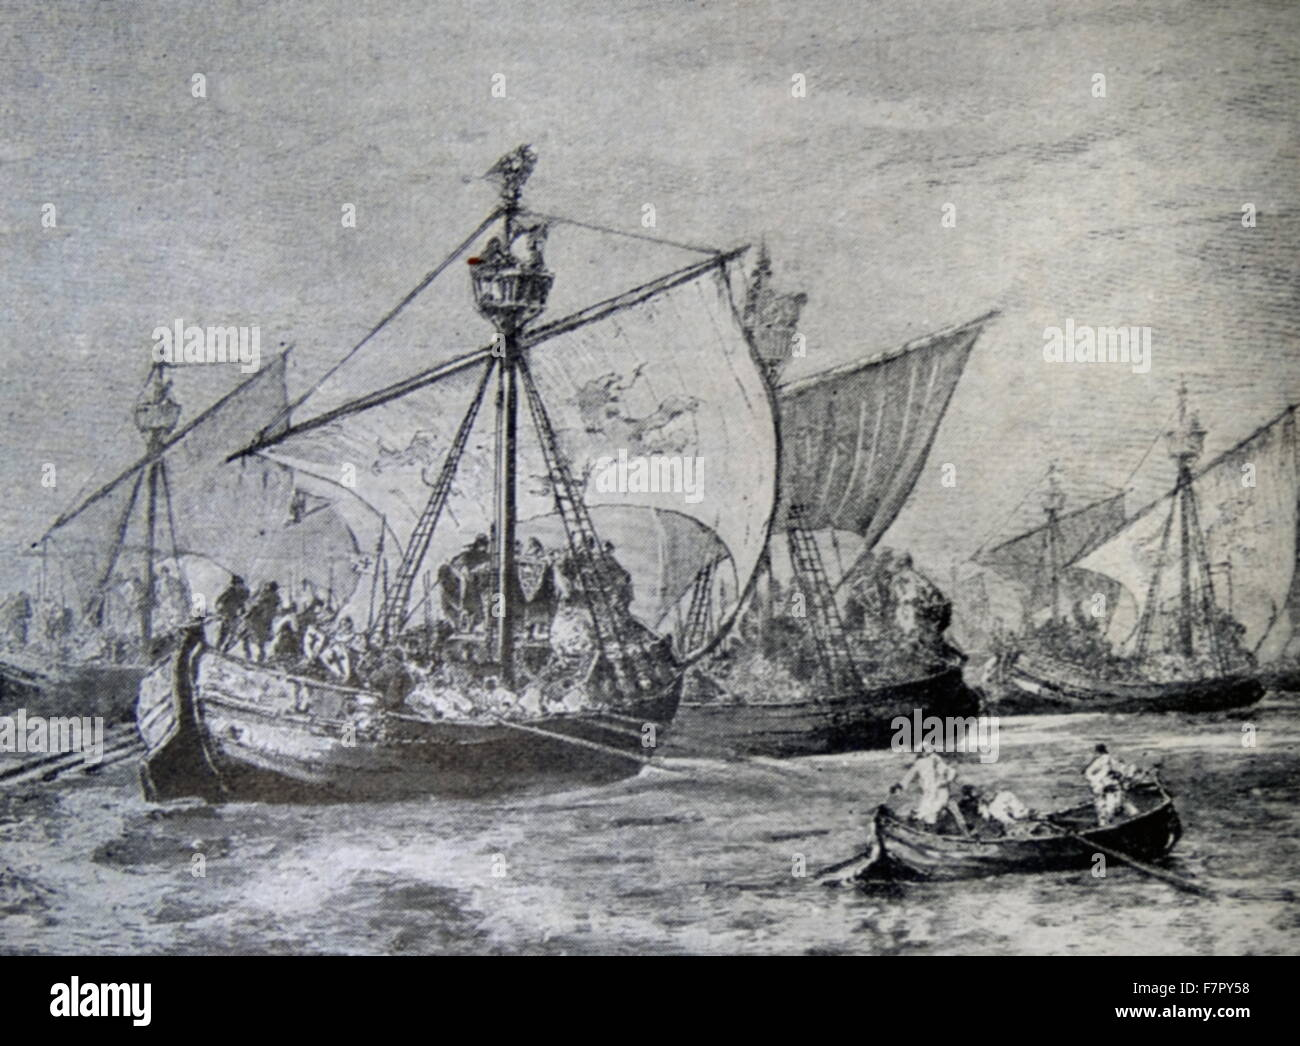 19th century illustration of Crusader fleet crossing the Bosporus in the 12th century - Stock Image